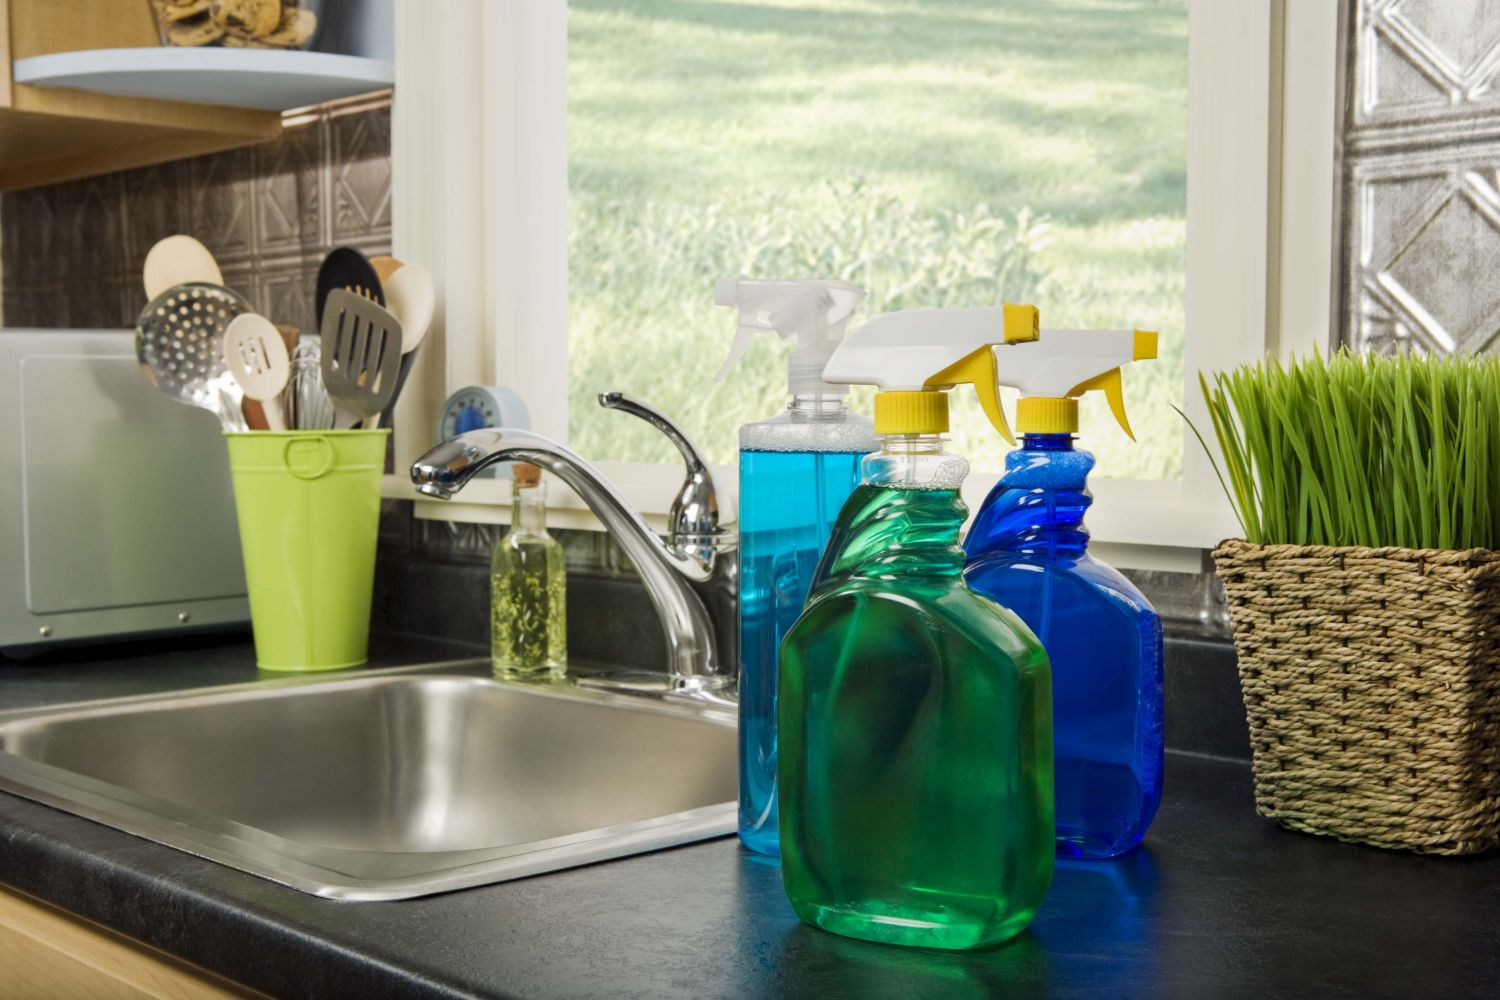 Housekeeping  products on a sink in Colfax, NC